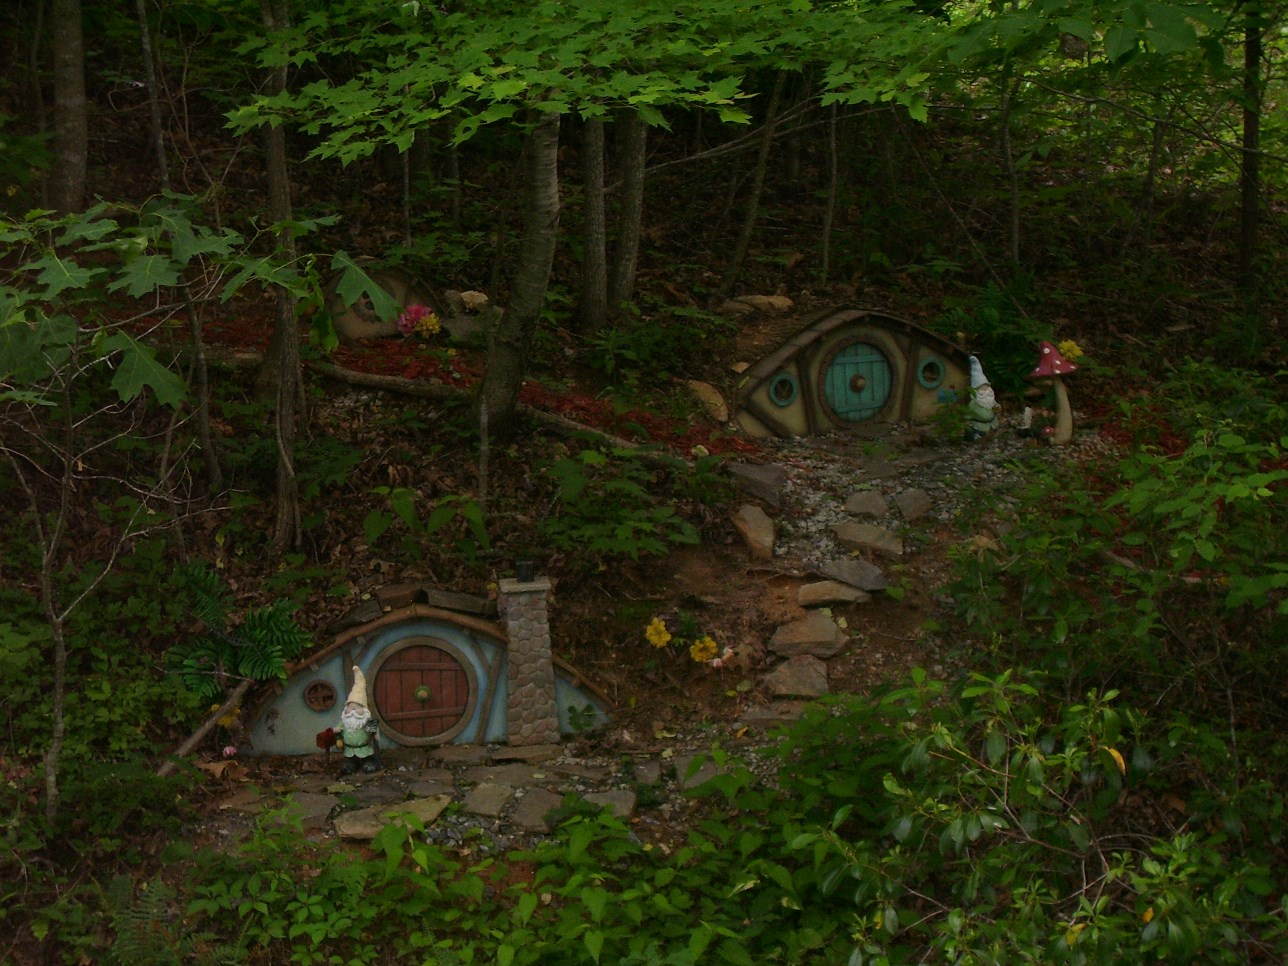 Enchanted Garden: EAST COBBER Frugal FunMom Field Trip Of The Day For Friday